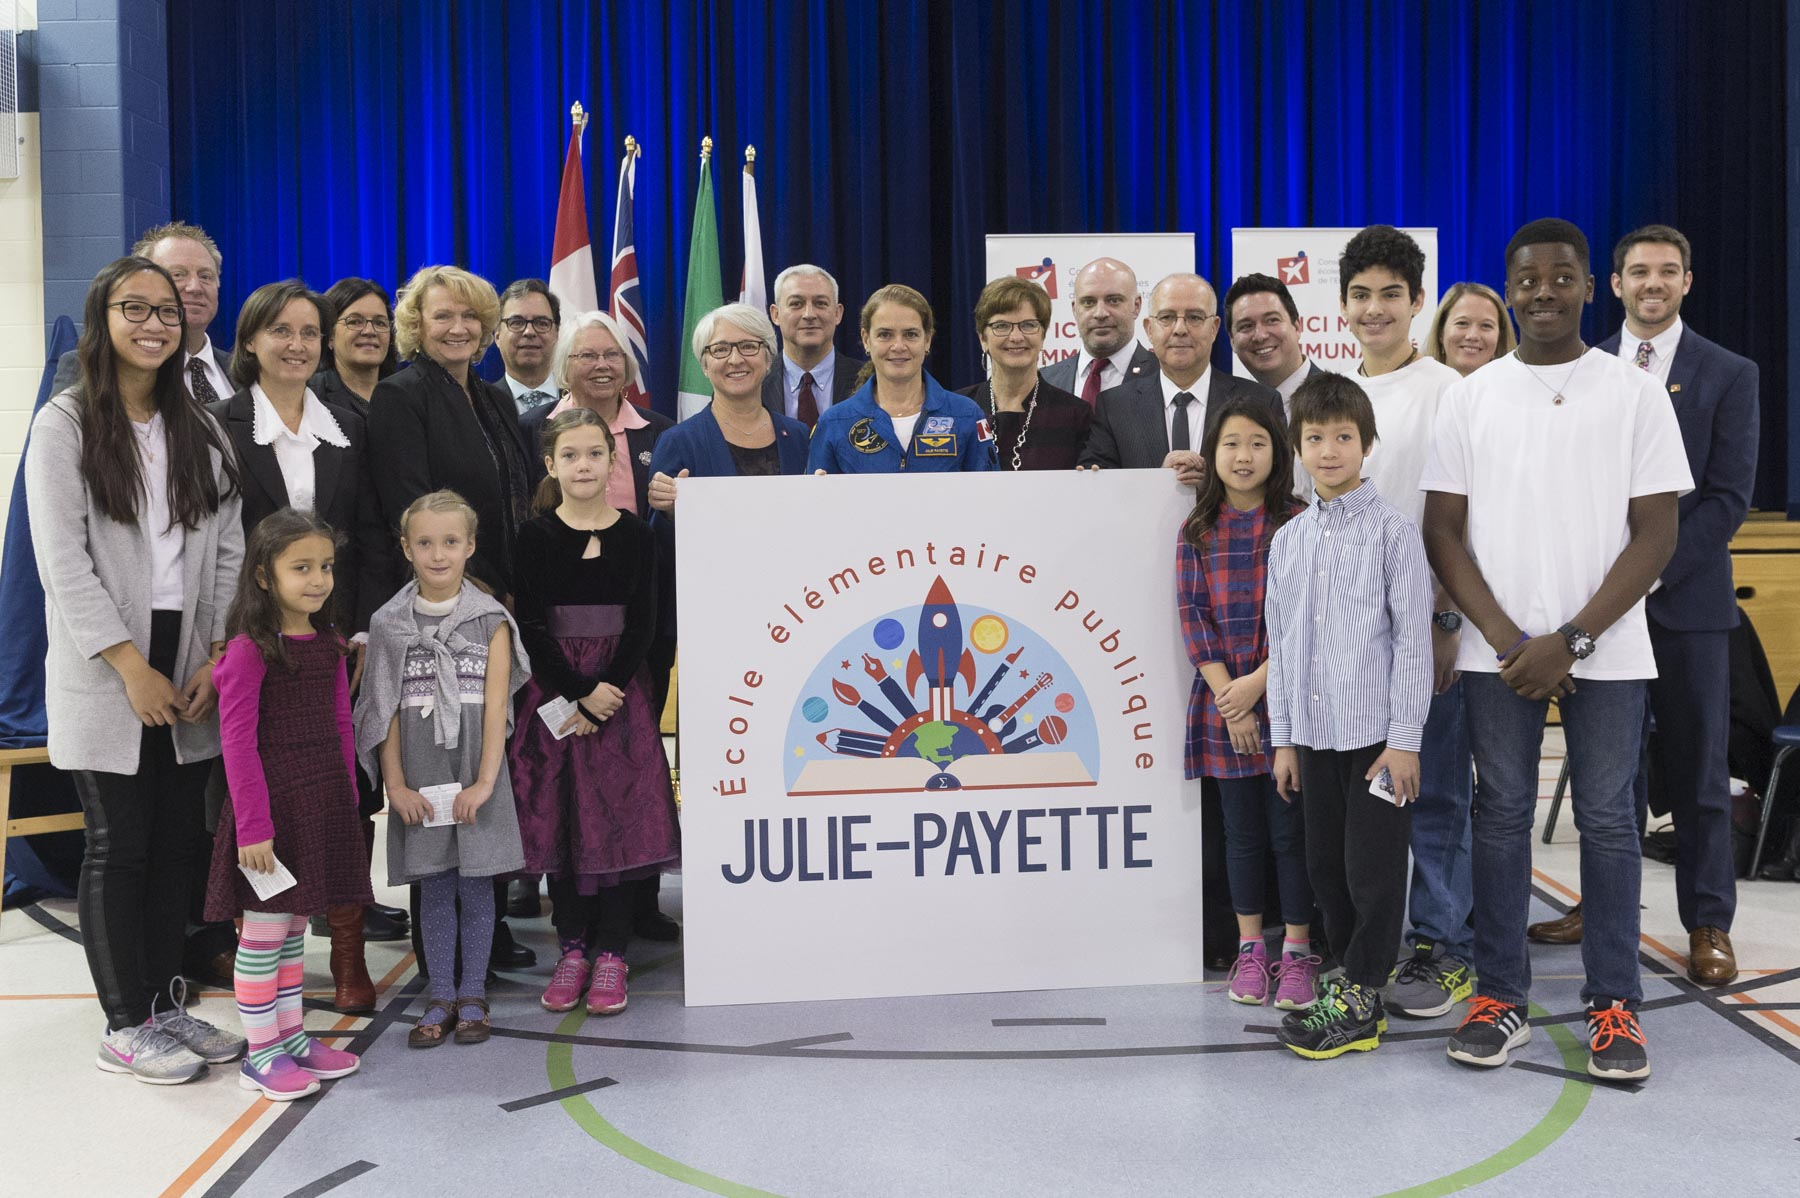 École élémentaire publique Kanata opened its doors in September 2000. In addition to offering courses and programs mandated by the Ontario Ministry of Education, the school places special emphasis on science, sports, arts and music.